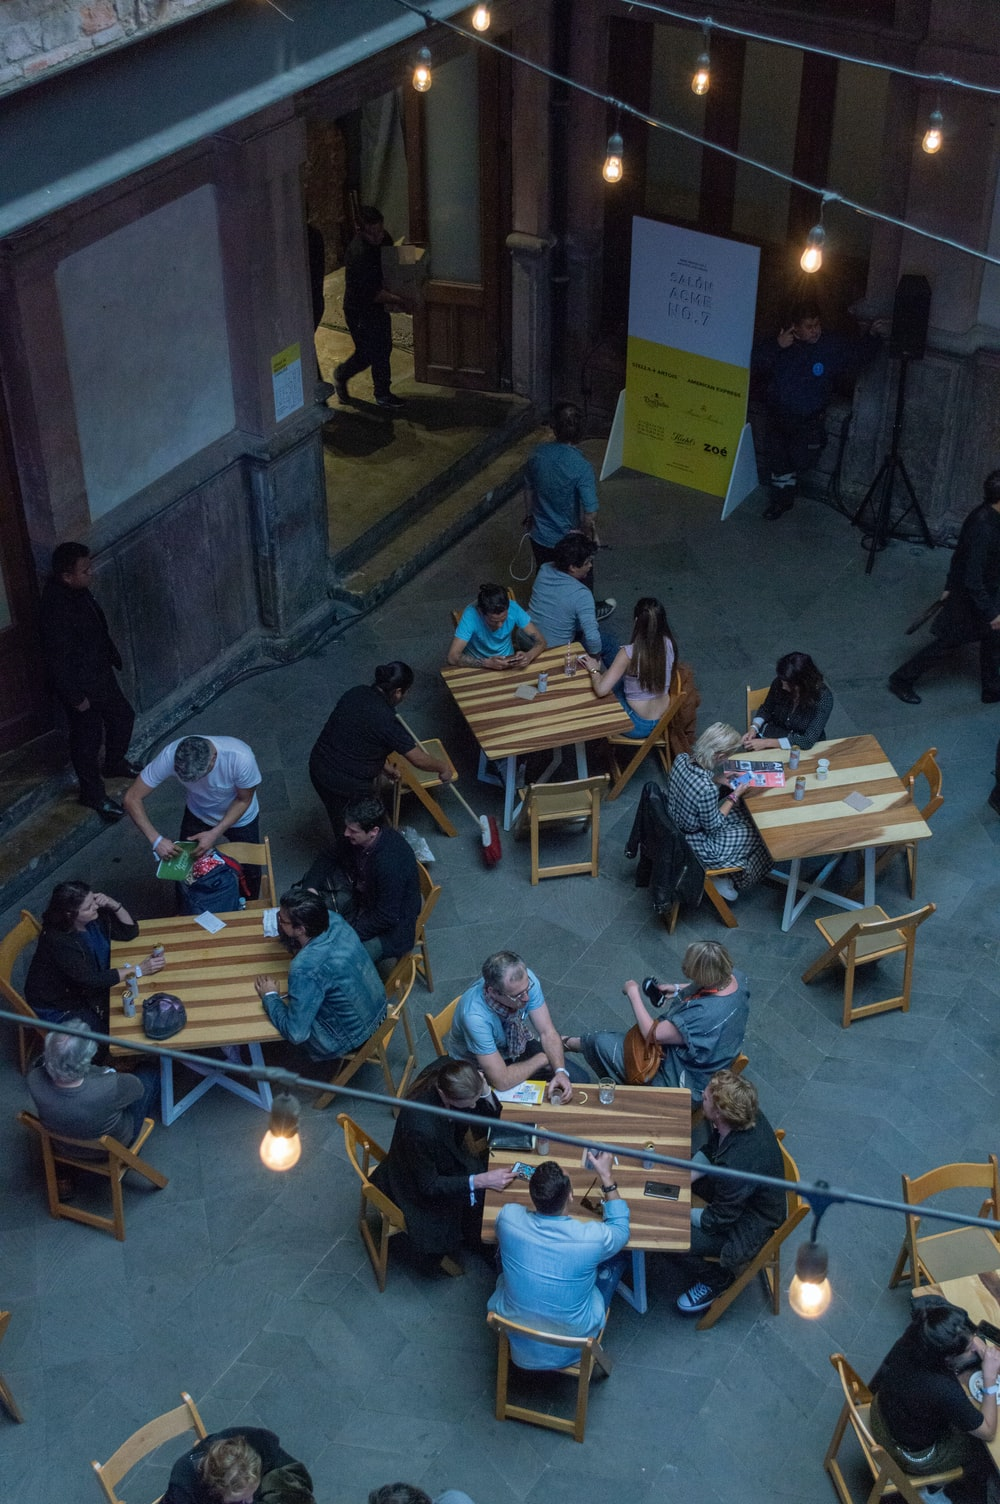 people sitting in front of table